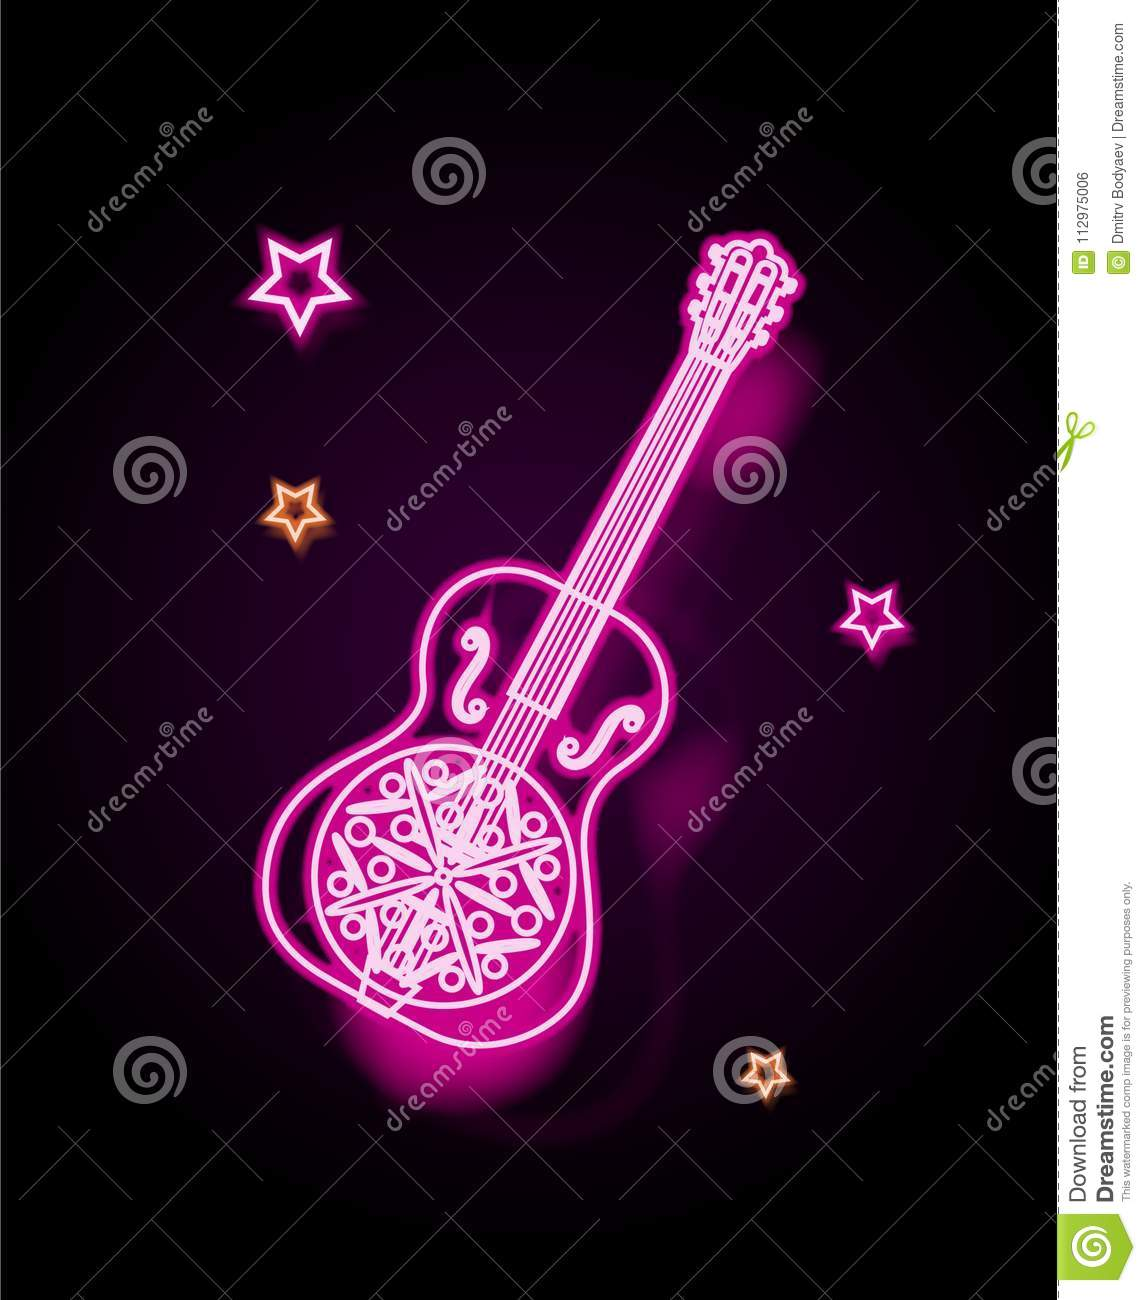 Illustration, a guitar stylized as a neon lamp